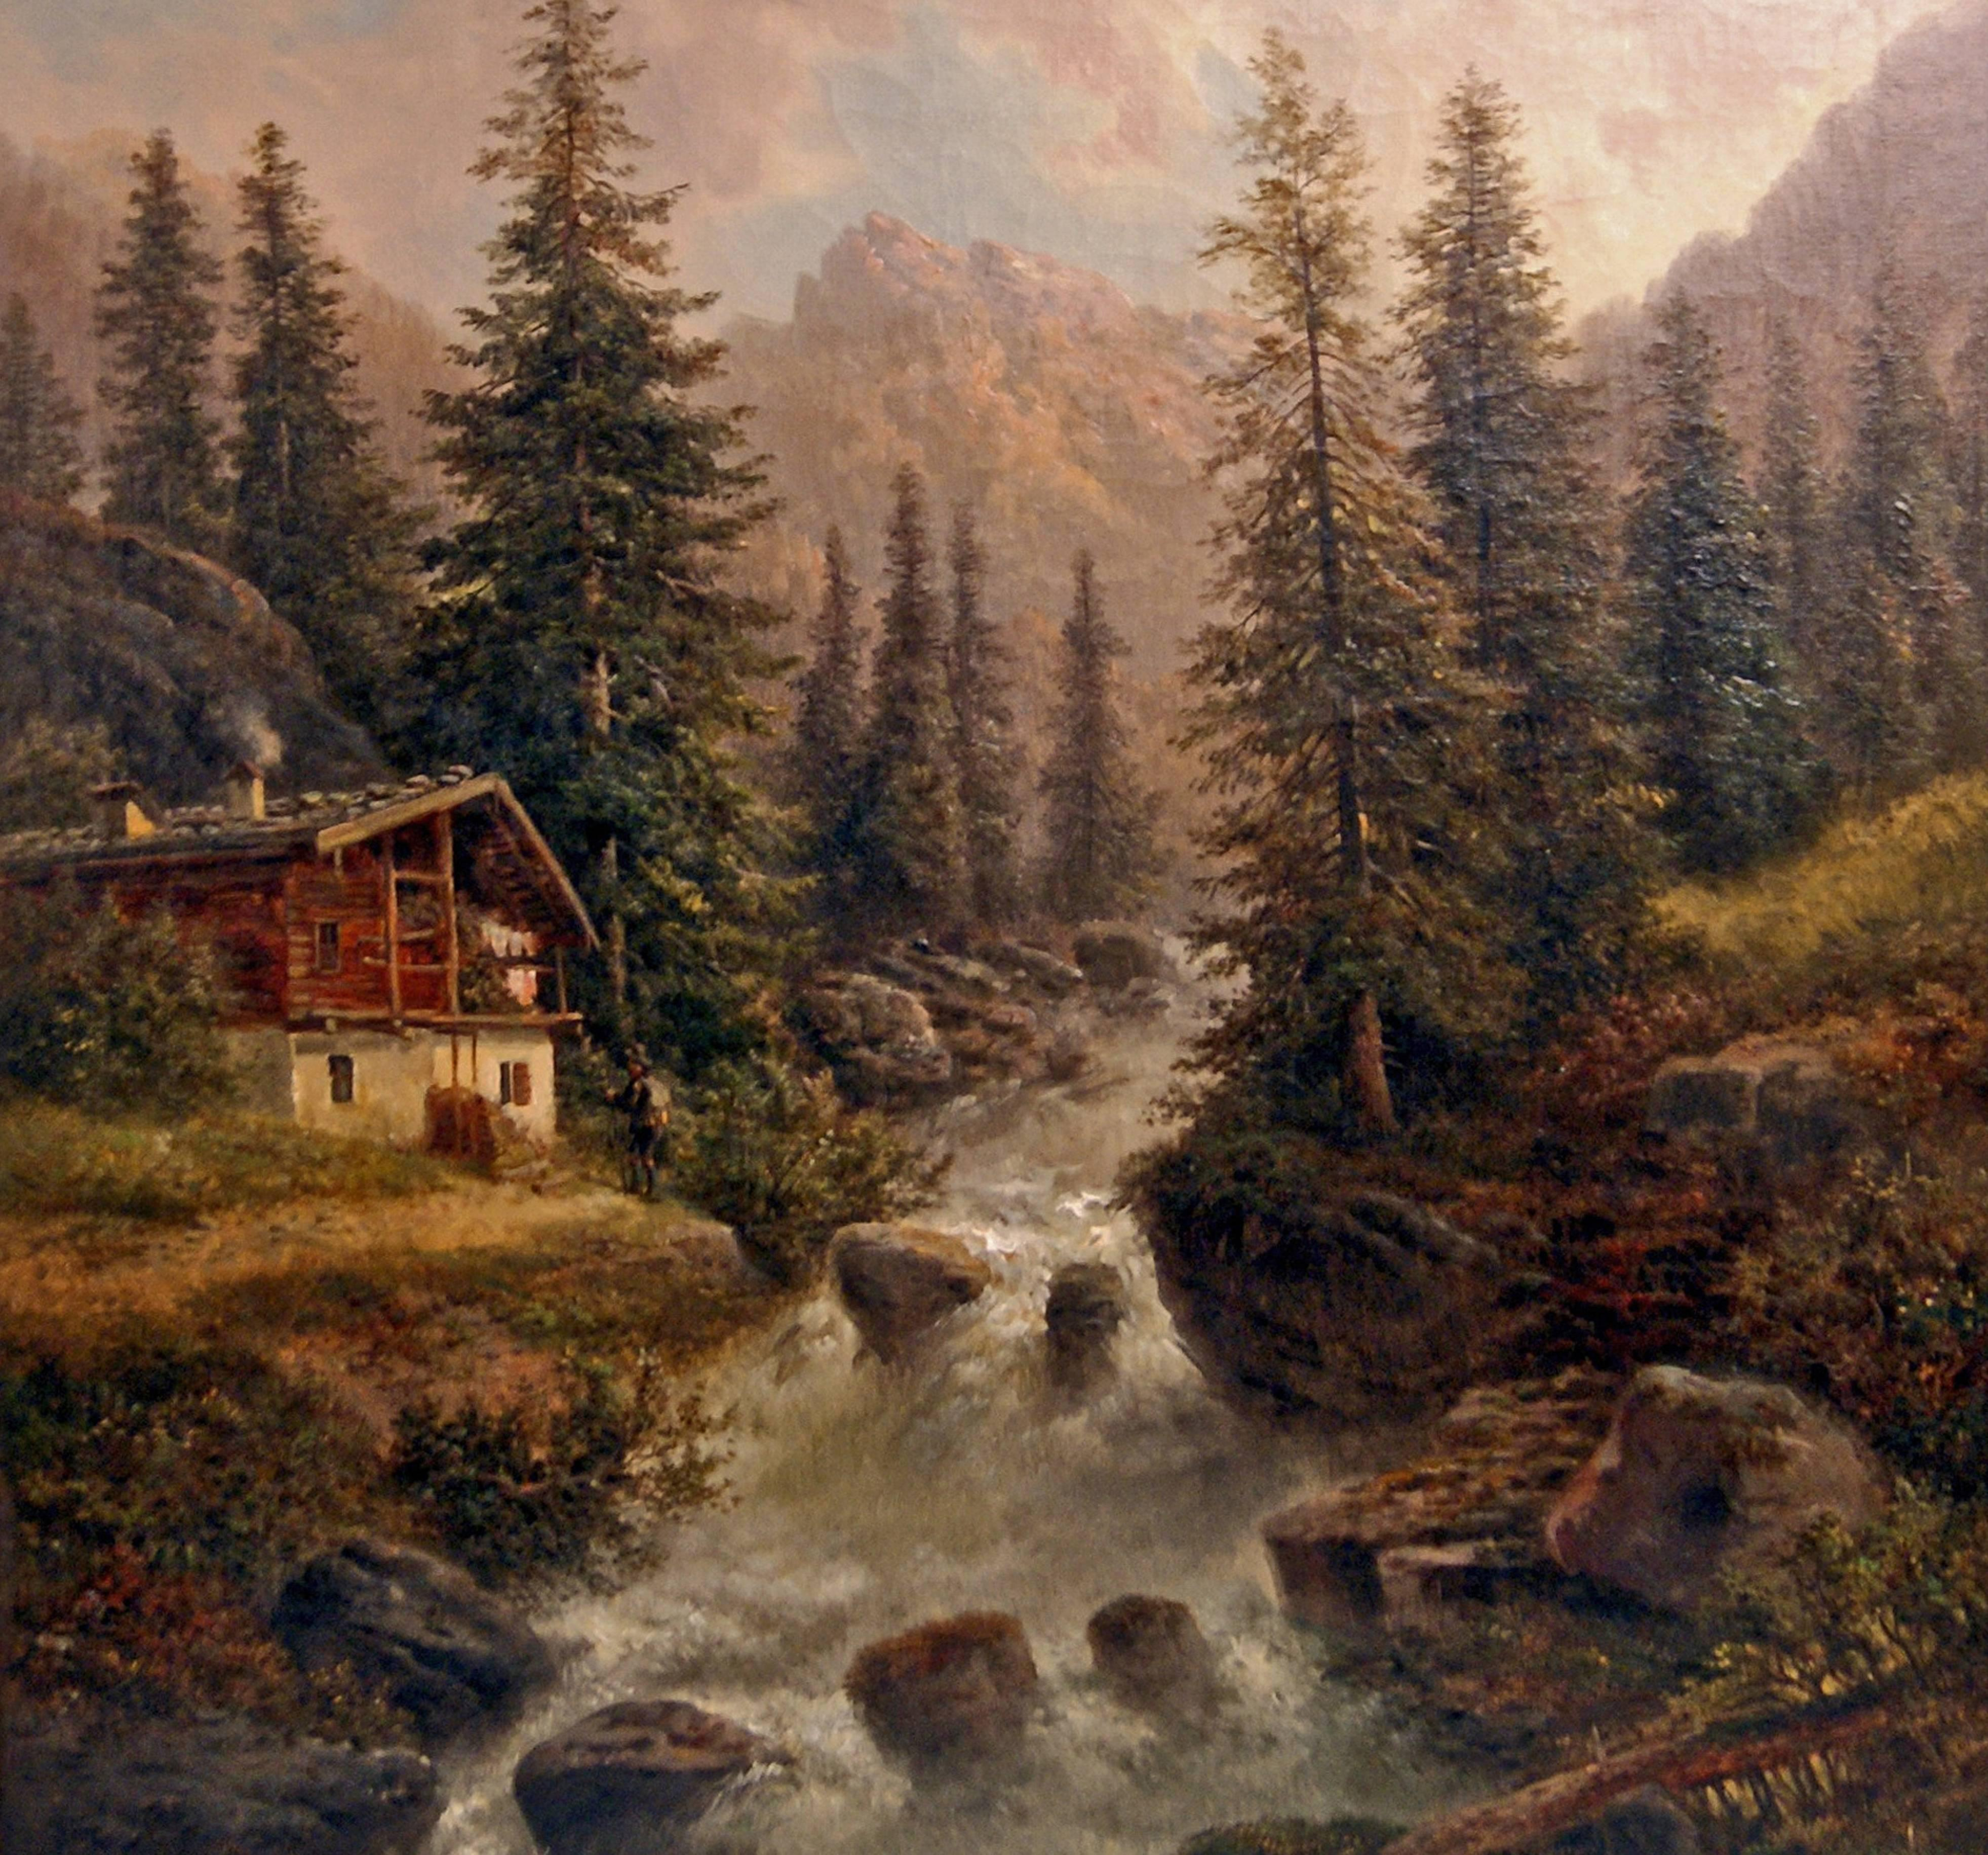 Painting Oil On Canvas Landscape High Mountains Gustav